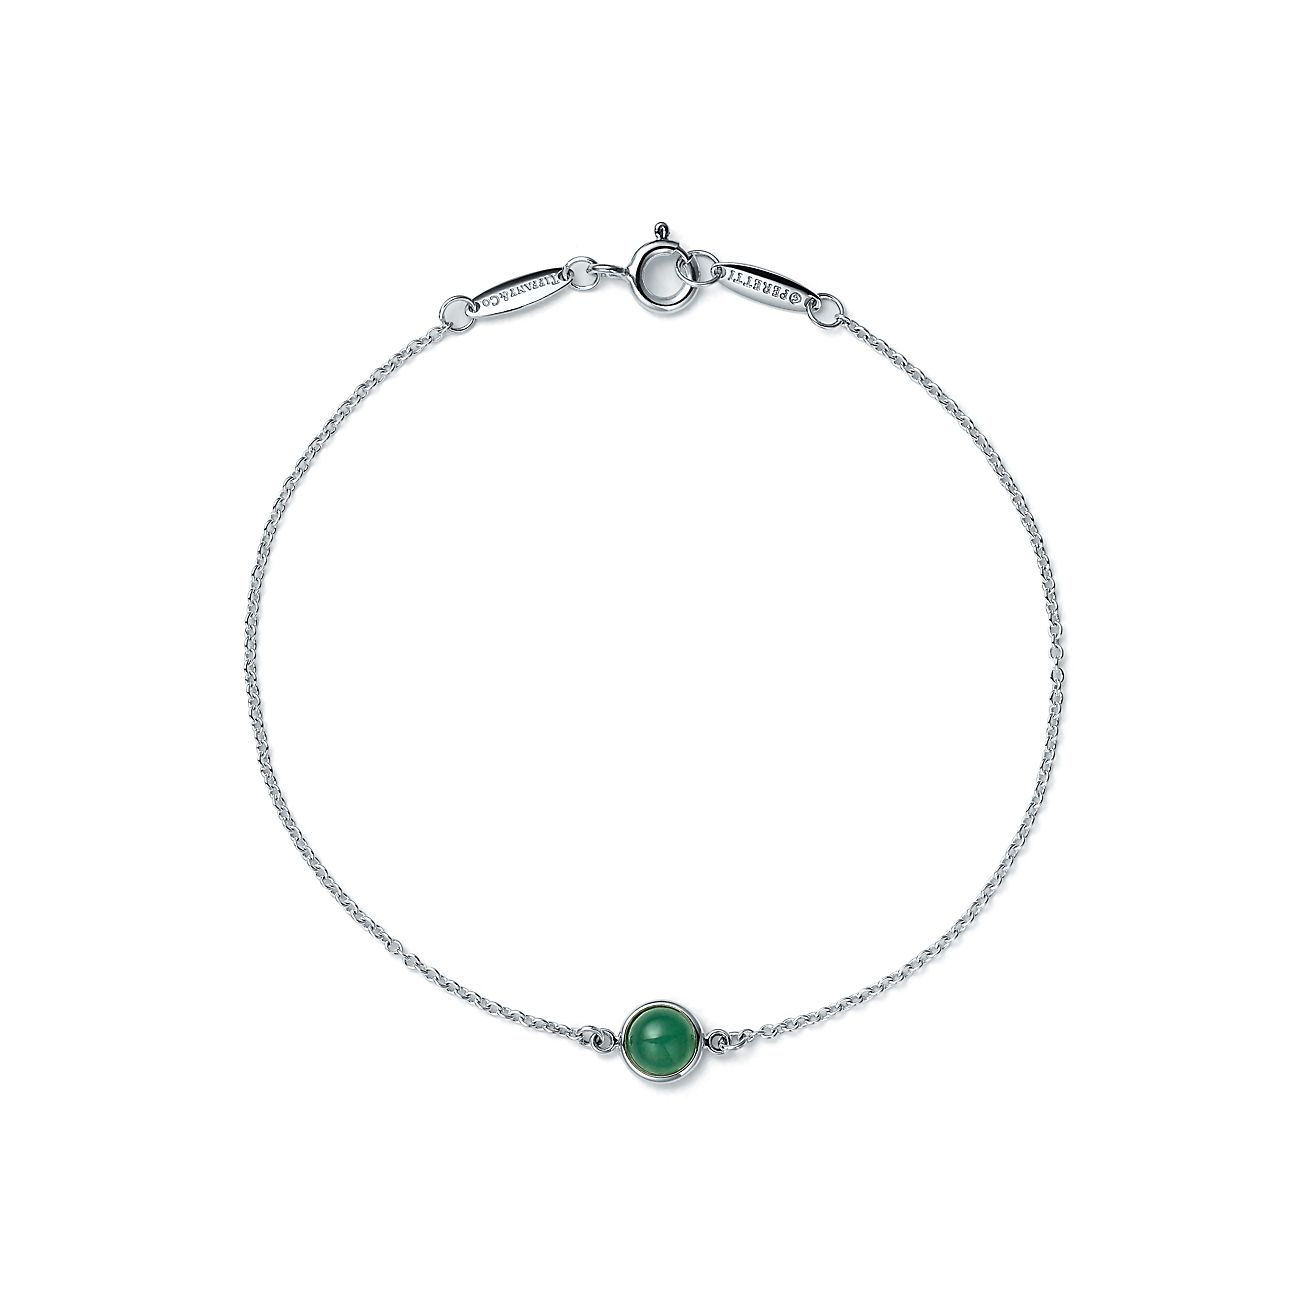 Elsa Peretti Color by the Yard bracelet in silver with green aventurine Tiffany & Co.